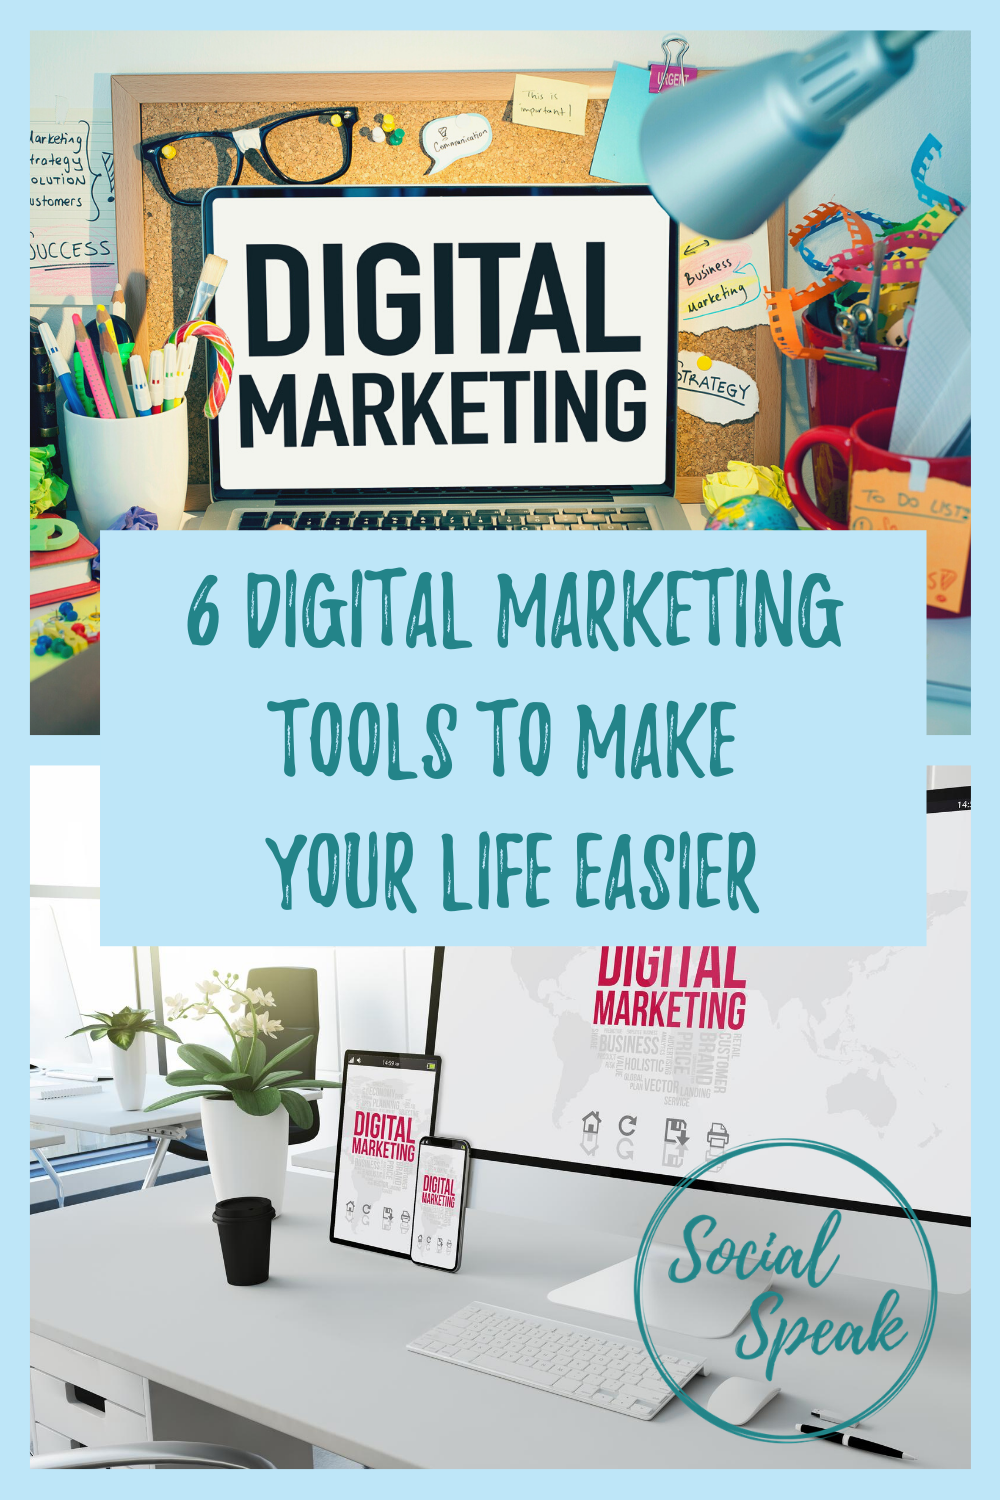 6 Digital Marketing Tools to Make Your Life Easier